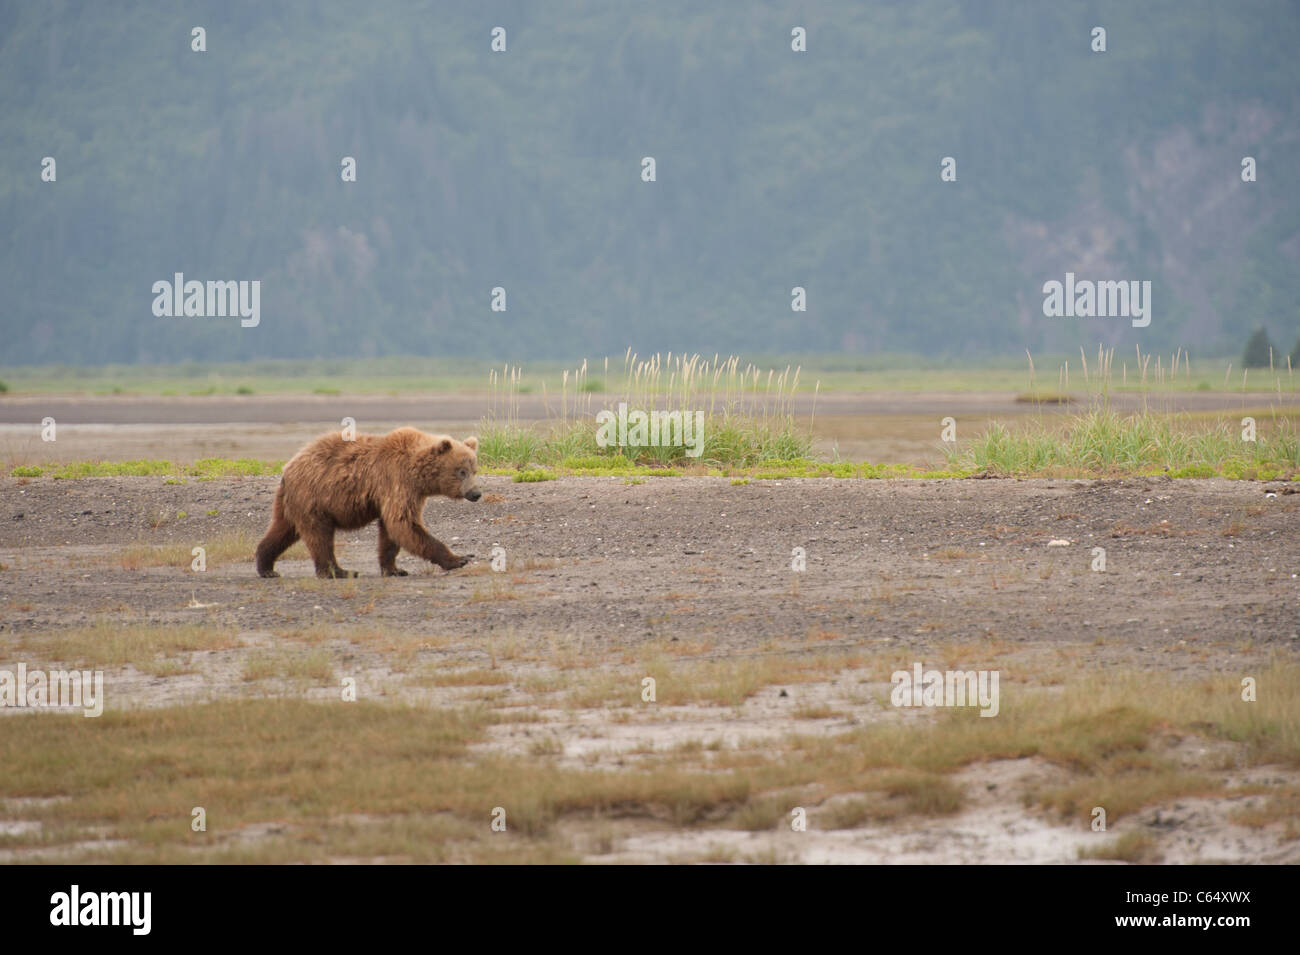 Brown Bears / Grizzly Bears Stock Photo